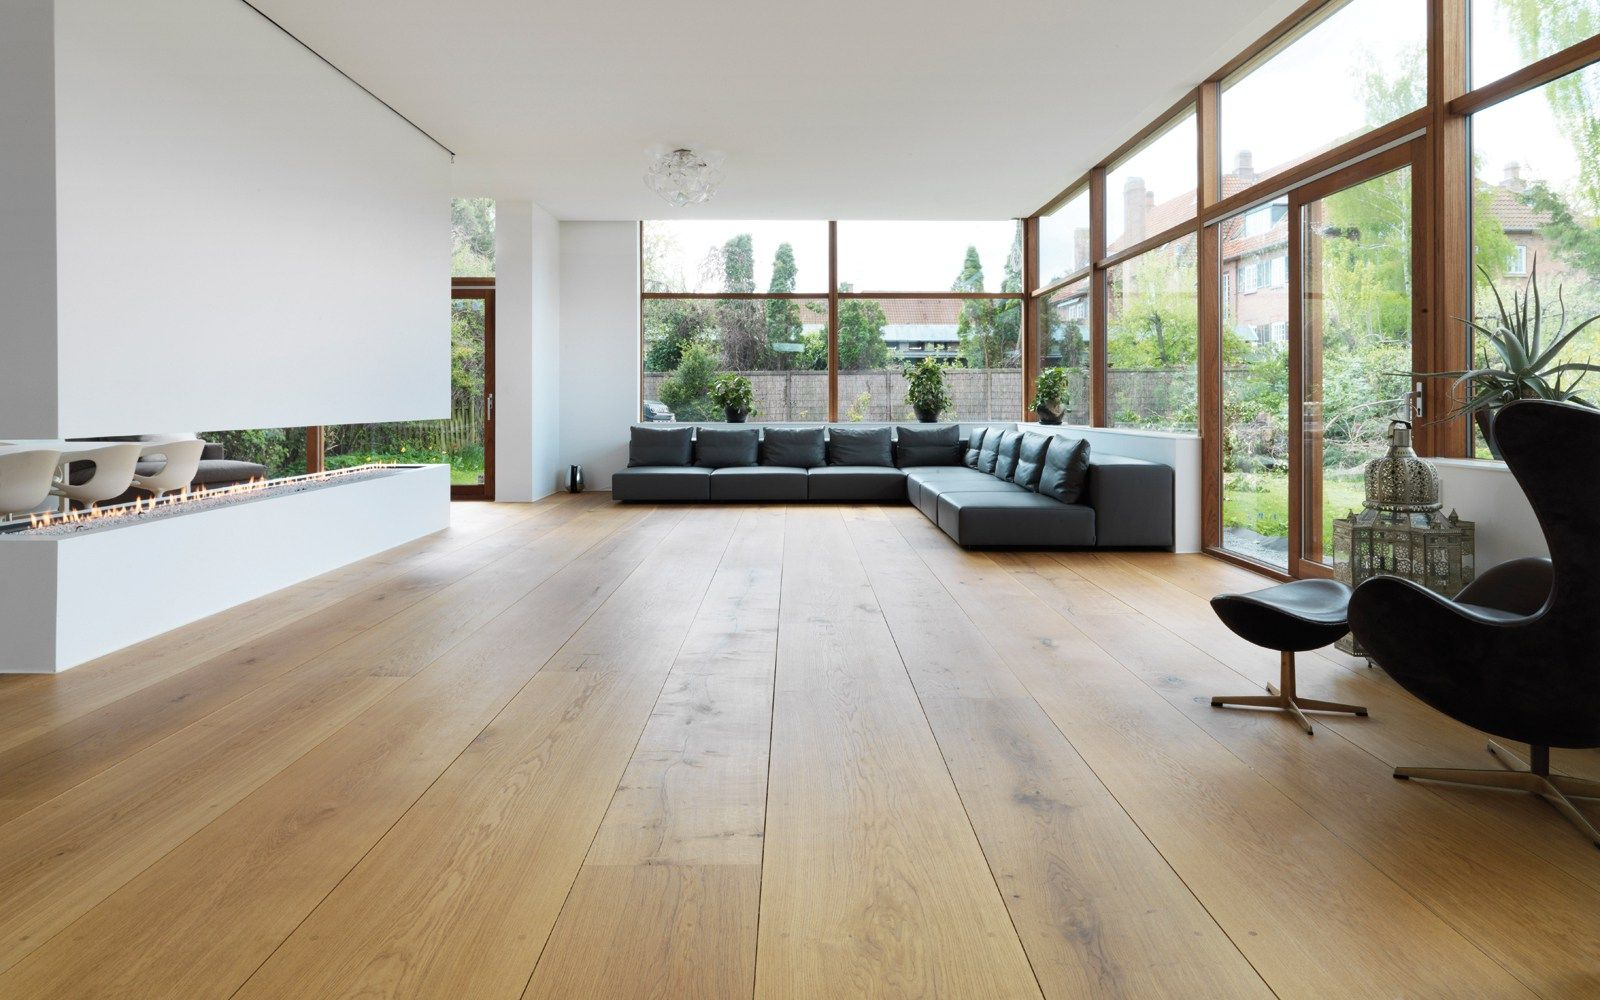 Fresh interiors with wooden floors and nordic design but needs colour and nicer furniture